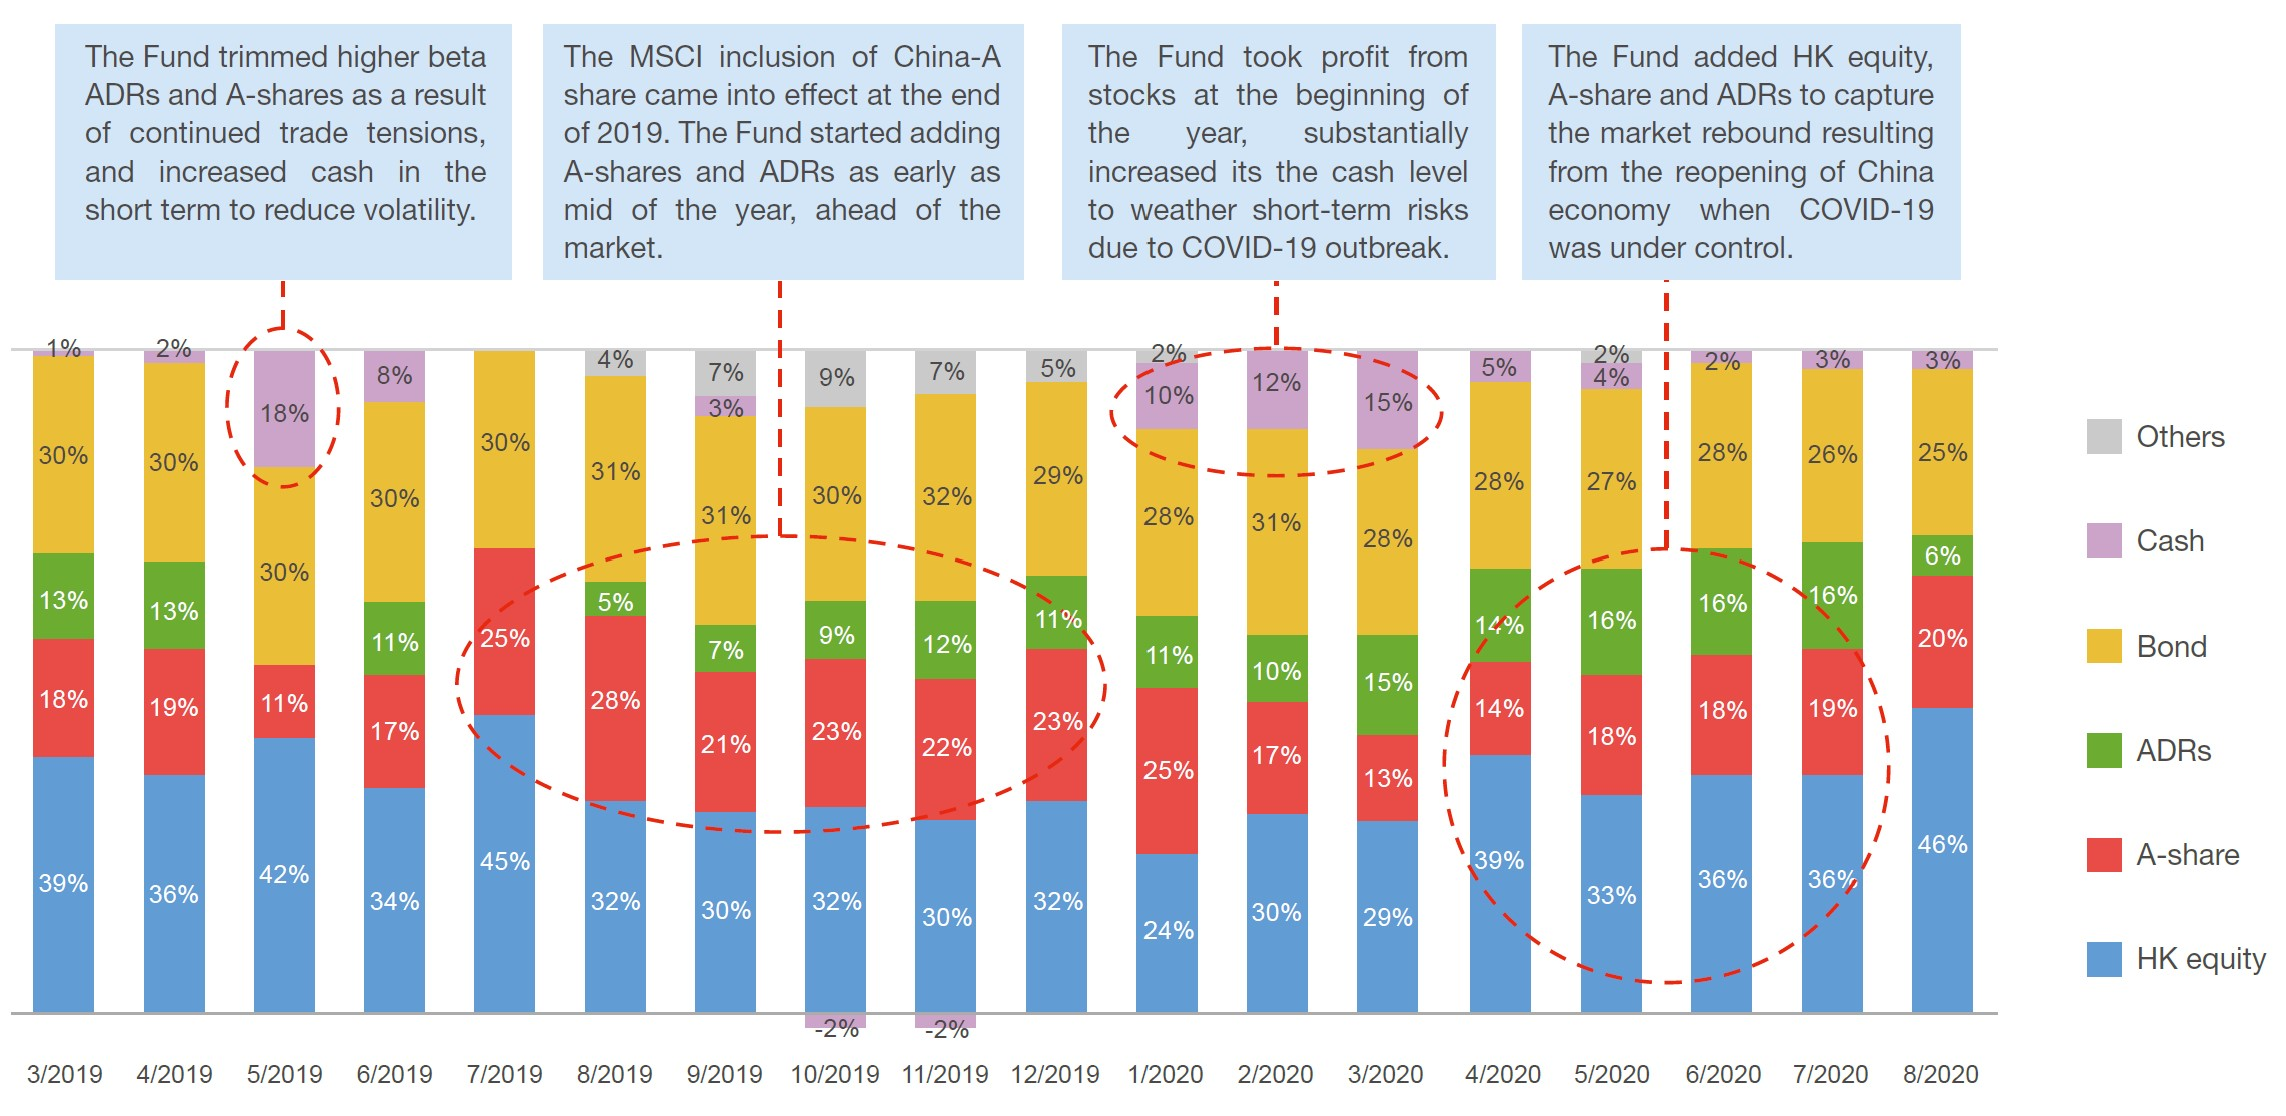 Dynamic asset allocation in multi-assets and cash